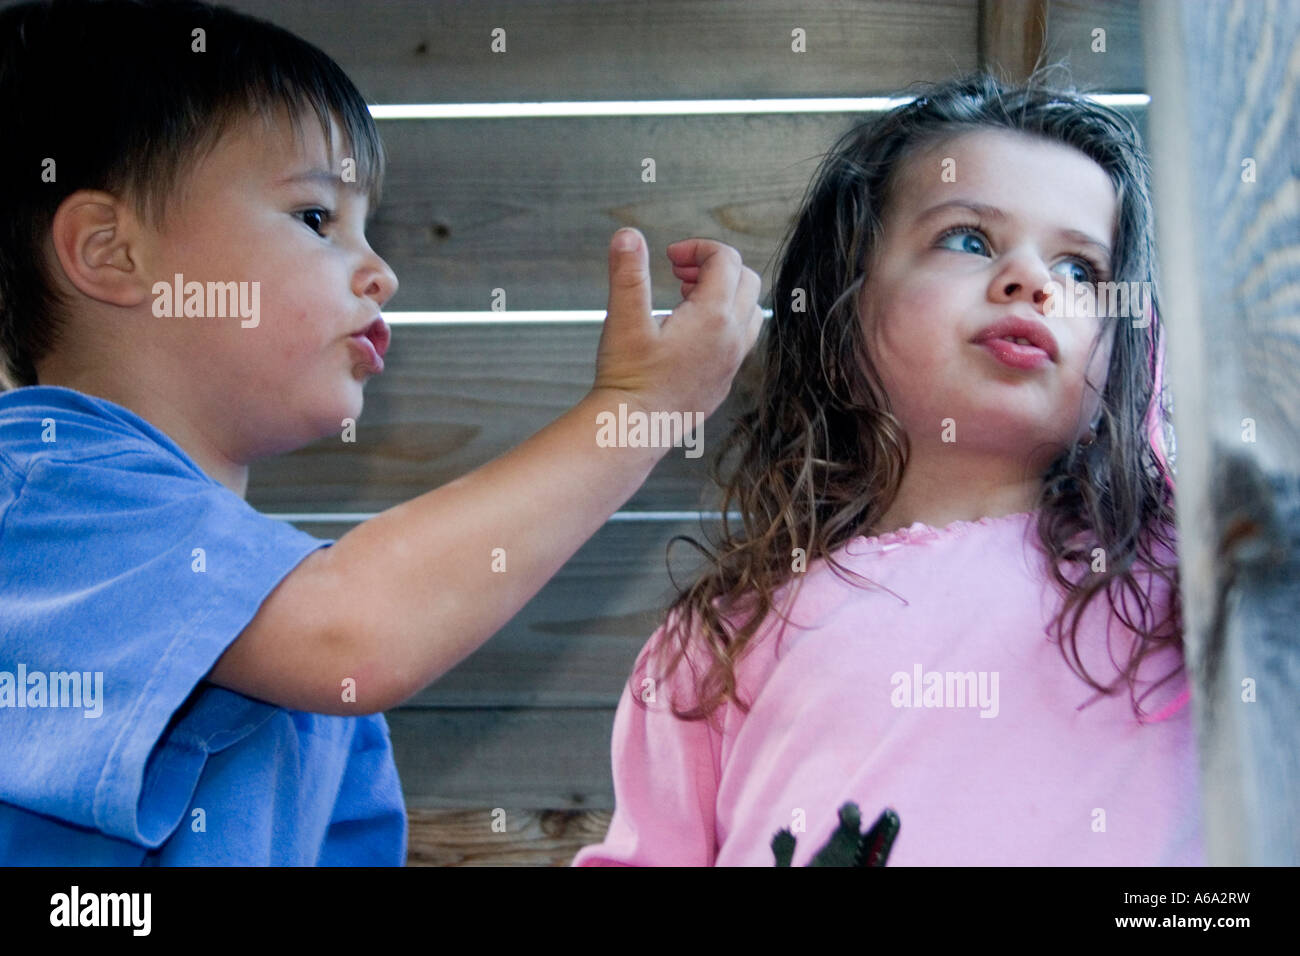 Two 3 year olds in conversation in play house. St Paul Minnesota USA - Stock Image